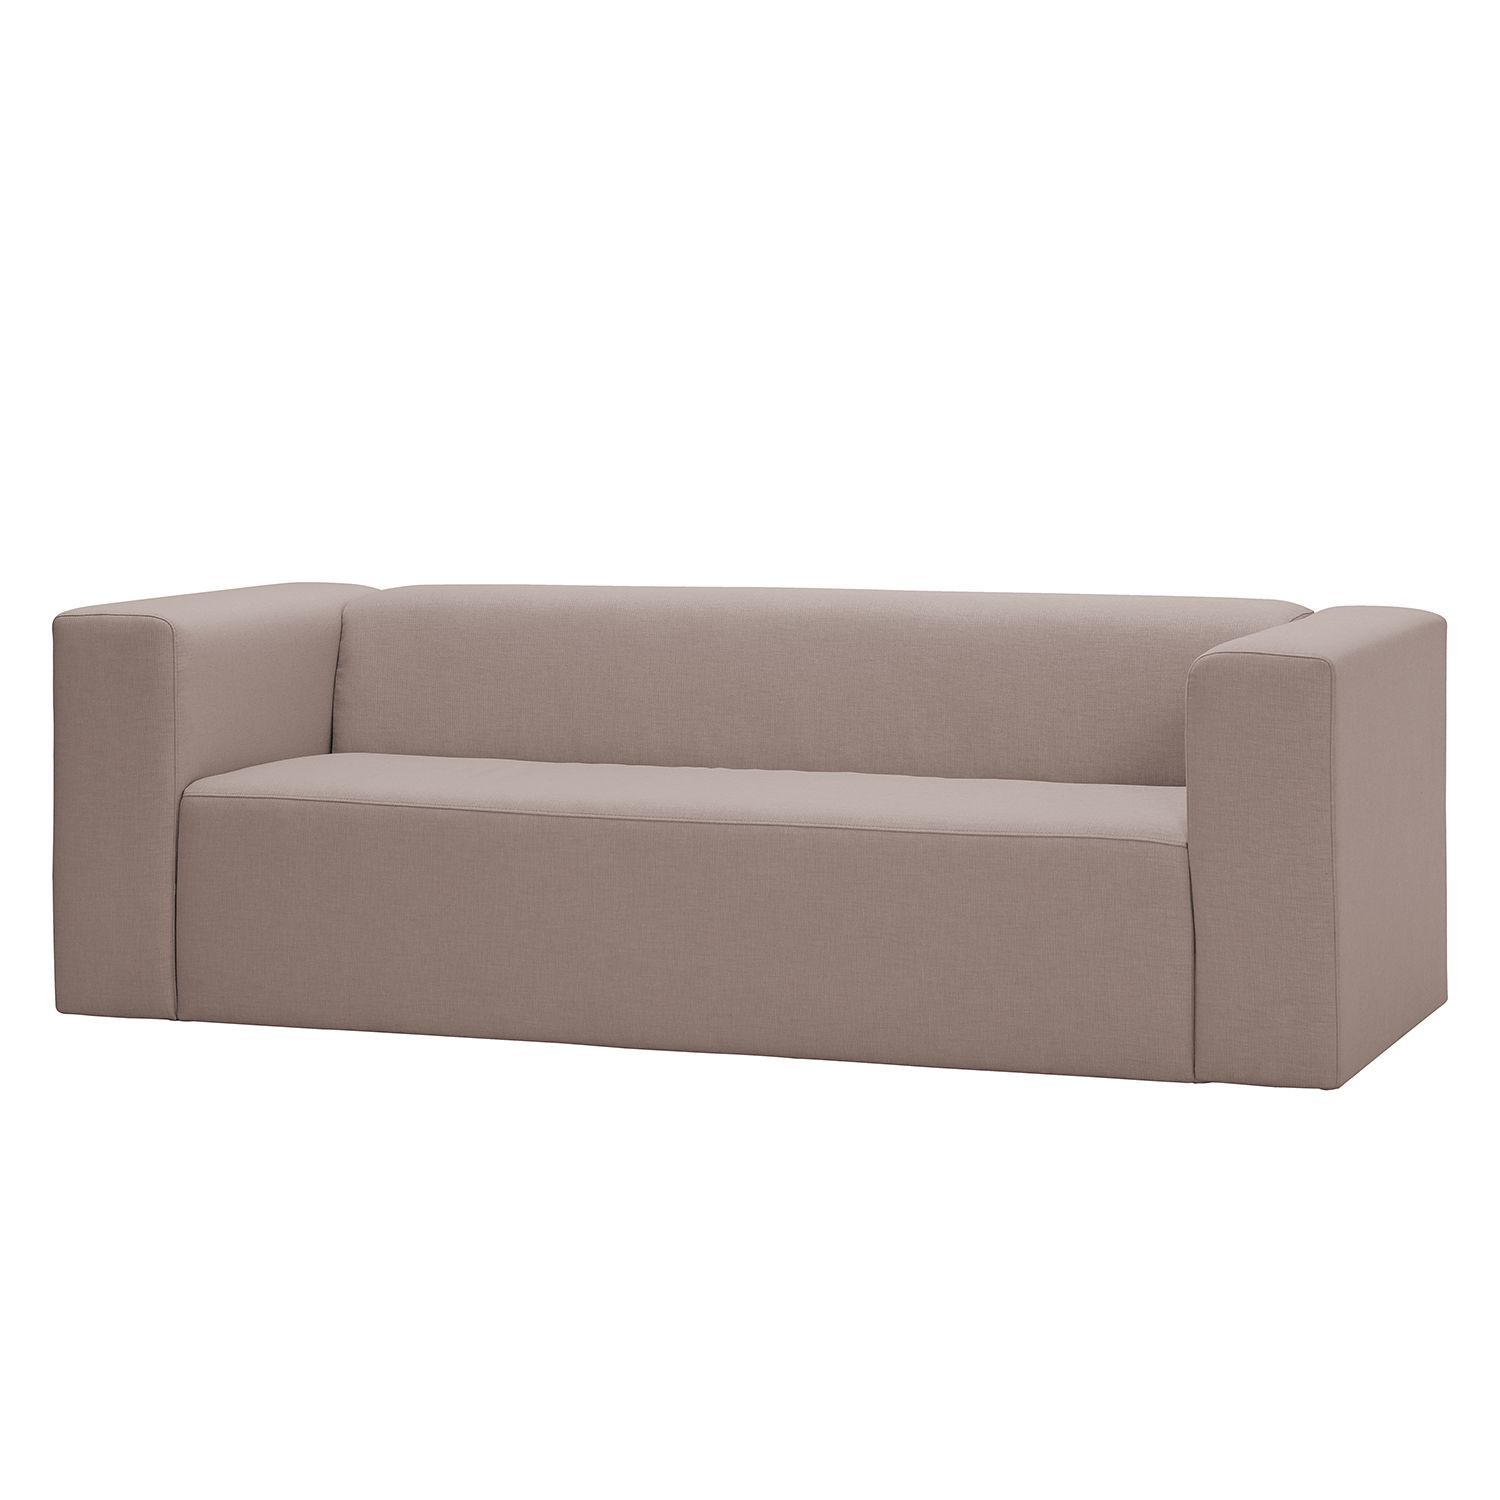 Sofaecke Excellent Full Size Of Ideen Big Sofa Ecke Besten Sofas Sofa Bestellen Full Size Of Couch Otto Reklamieren Sofas